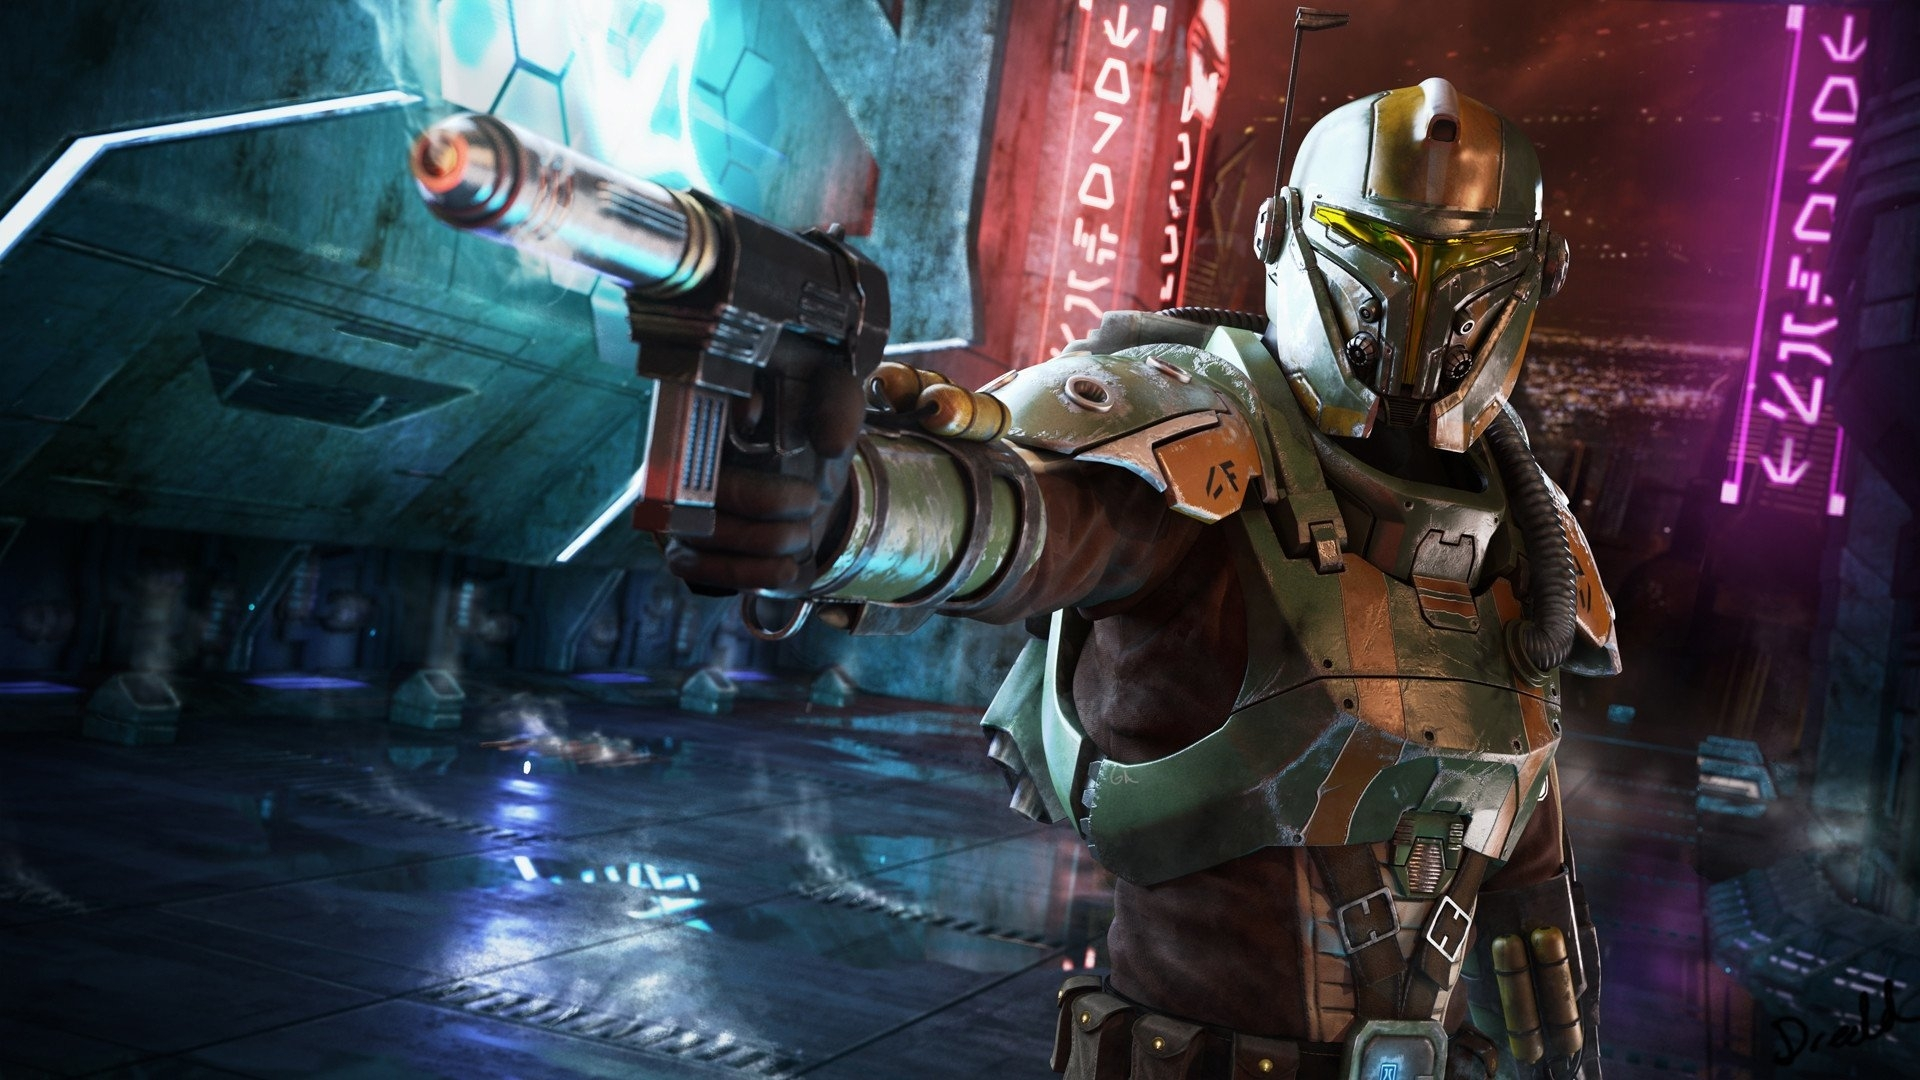 34 bounty hunter hd wallpapers | background images - wallpaper abyss